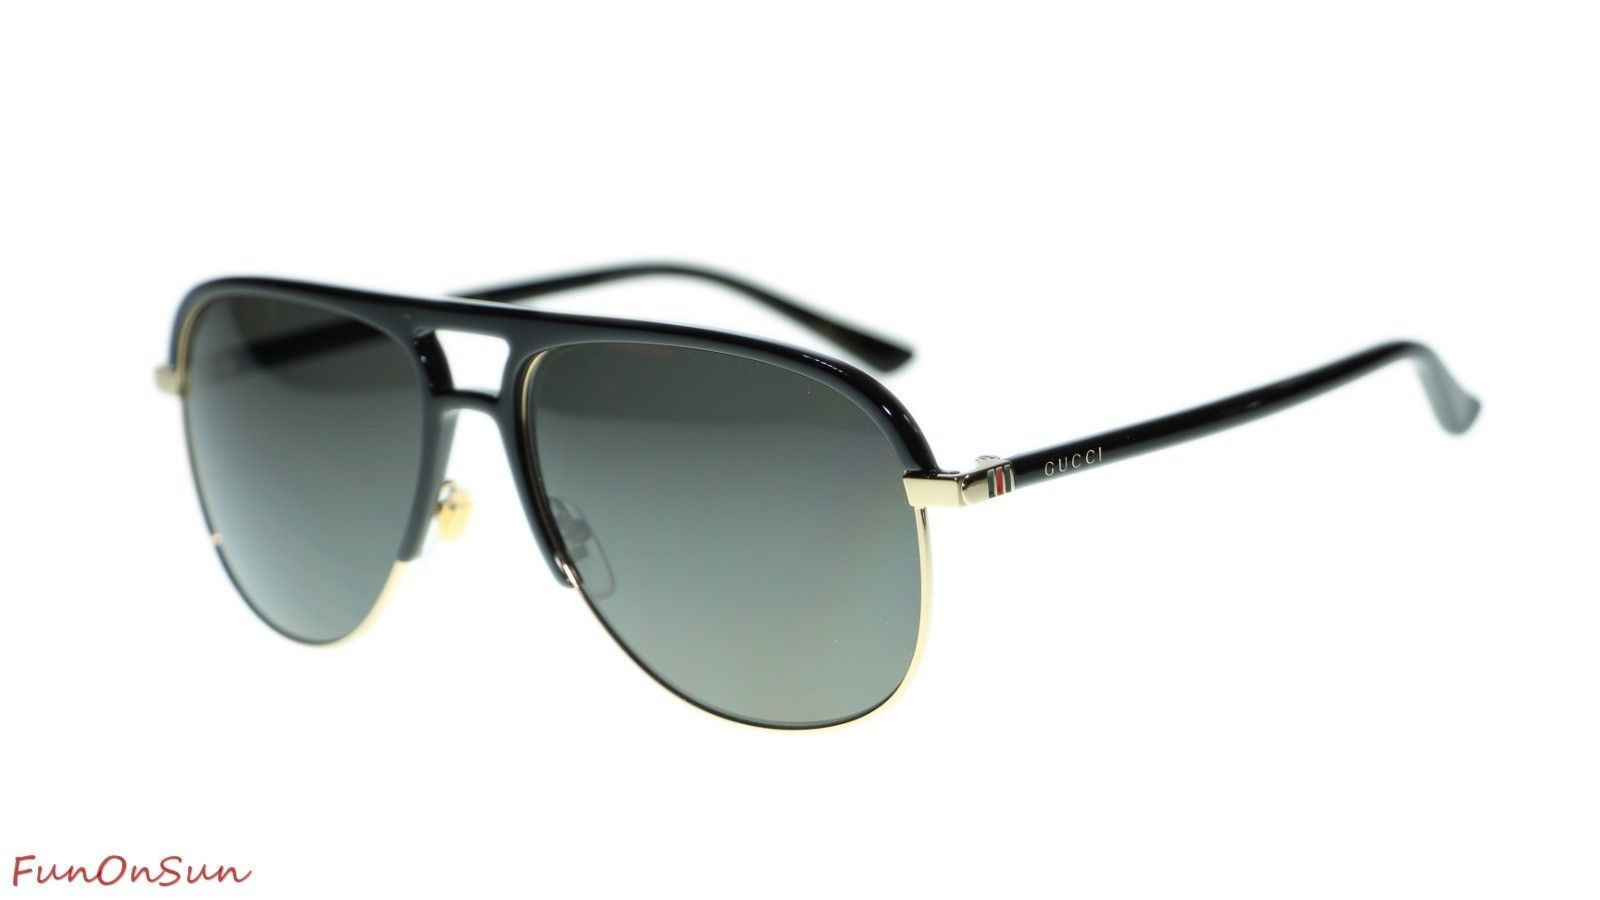 d8e2df41ce1a 10. 10. Previous. NEW Gucci Men Sunglasses GG0292S 002 Black Grey Polarized  Lens Pilot 60mm. NEW Gucci ...